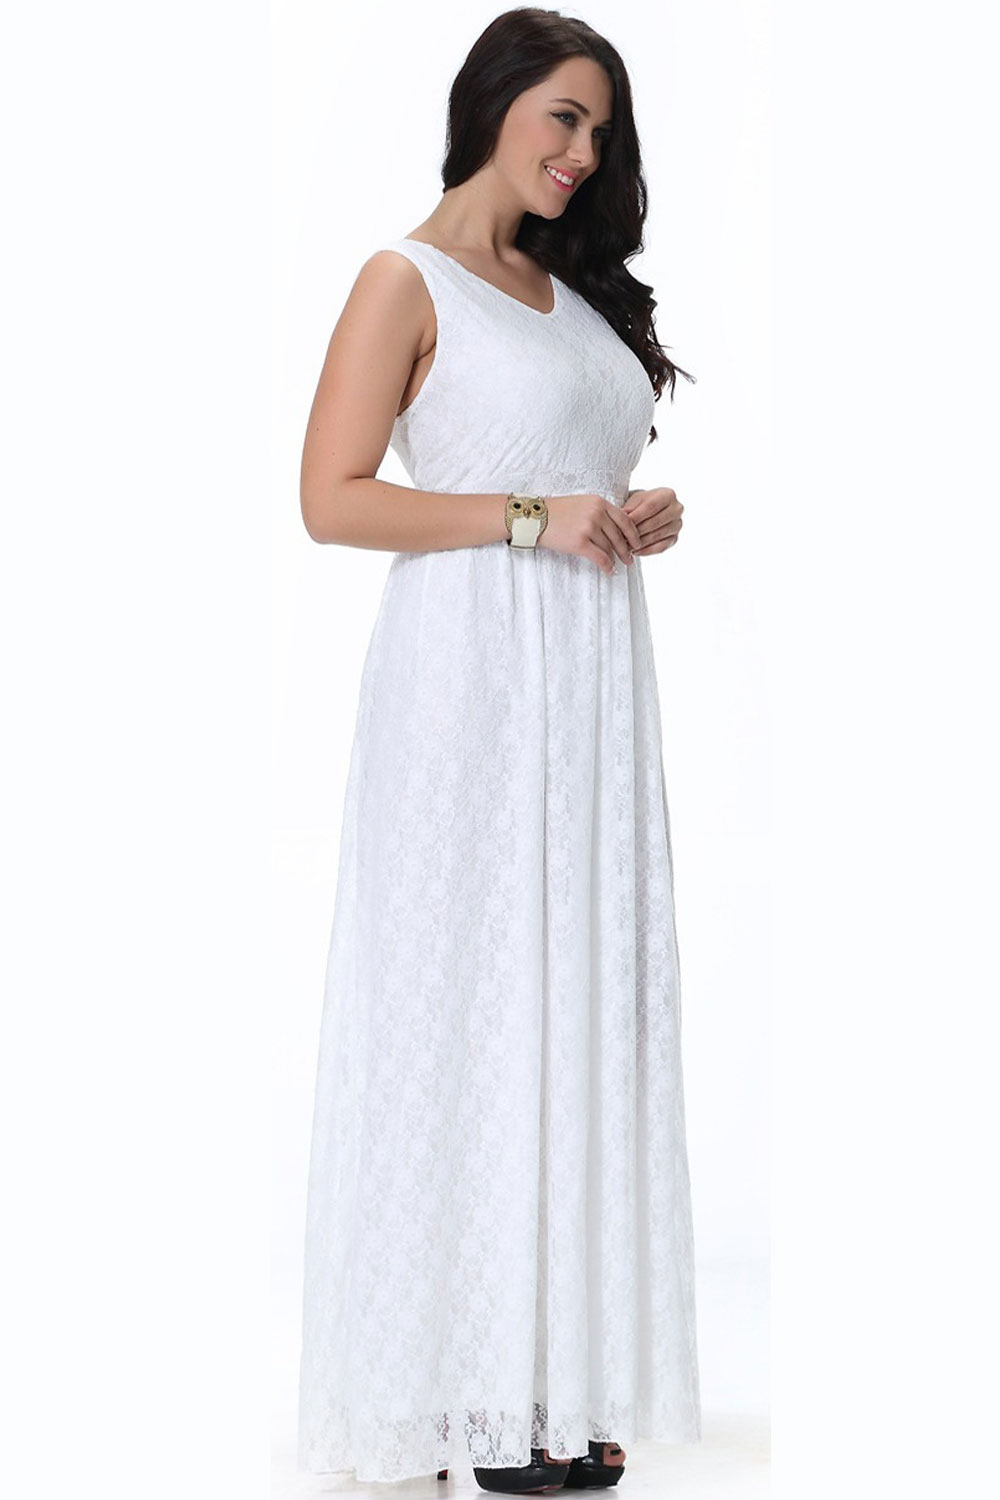 UNOMATCH WOMEN WEDDING SLEEVELESS V-NECK PLUS SIZE DRESS PLEATED ...